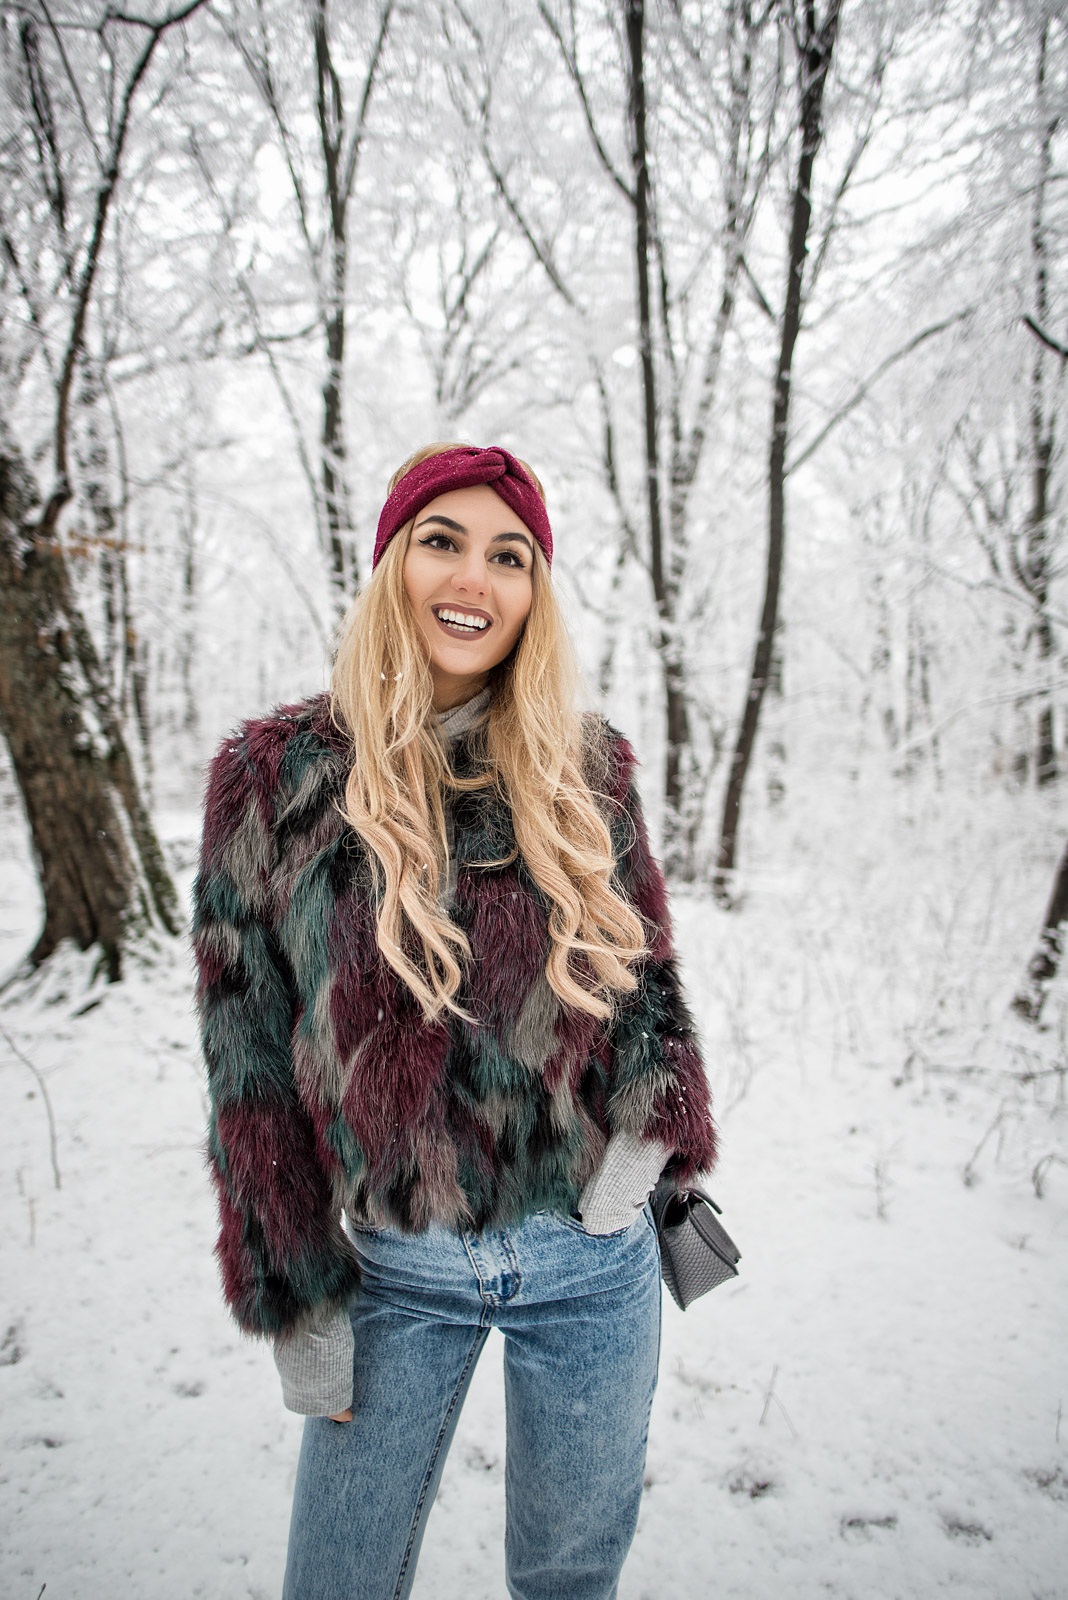 Chic and Warm in the Snow